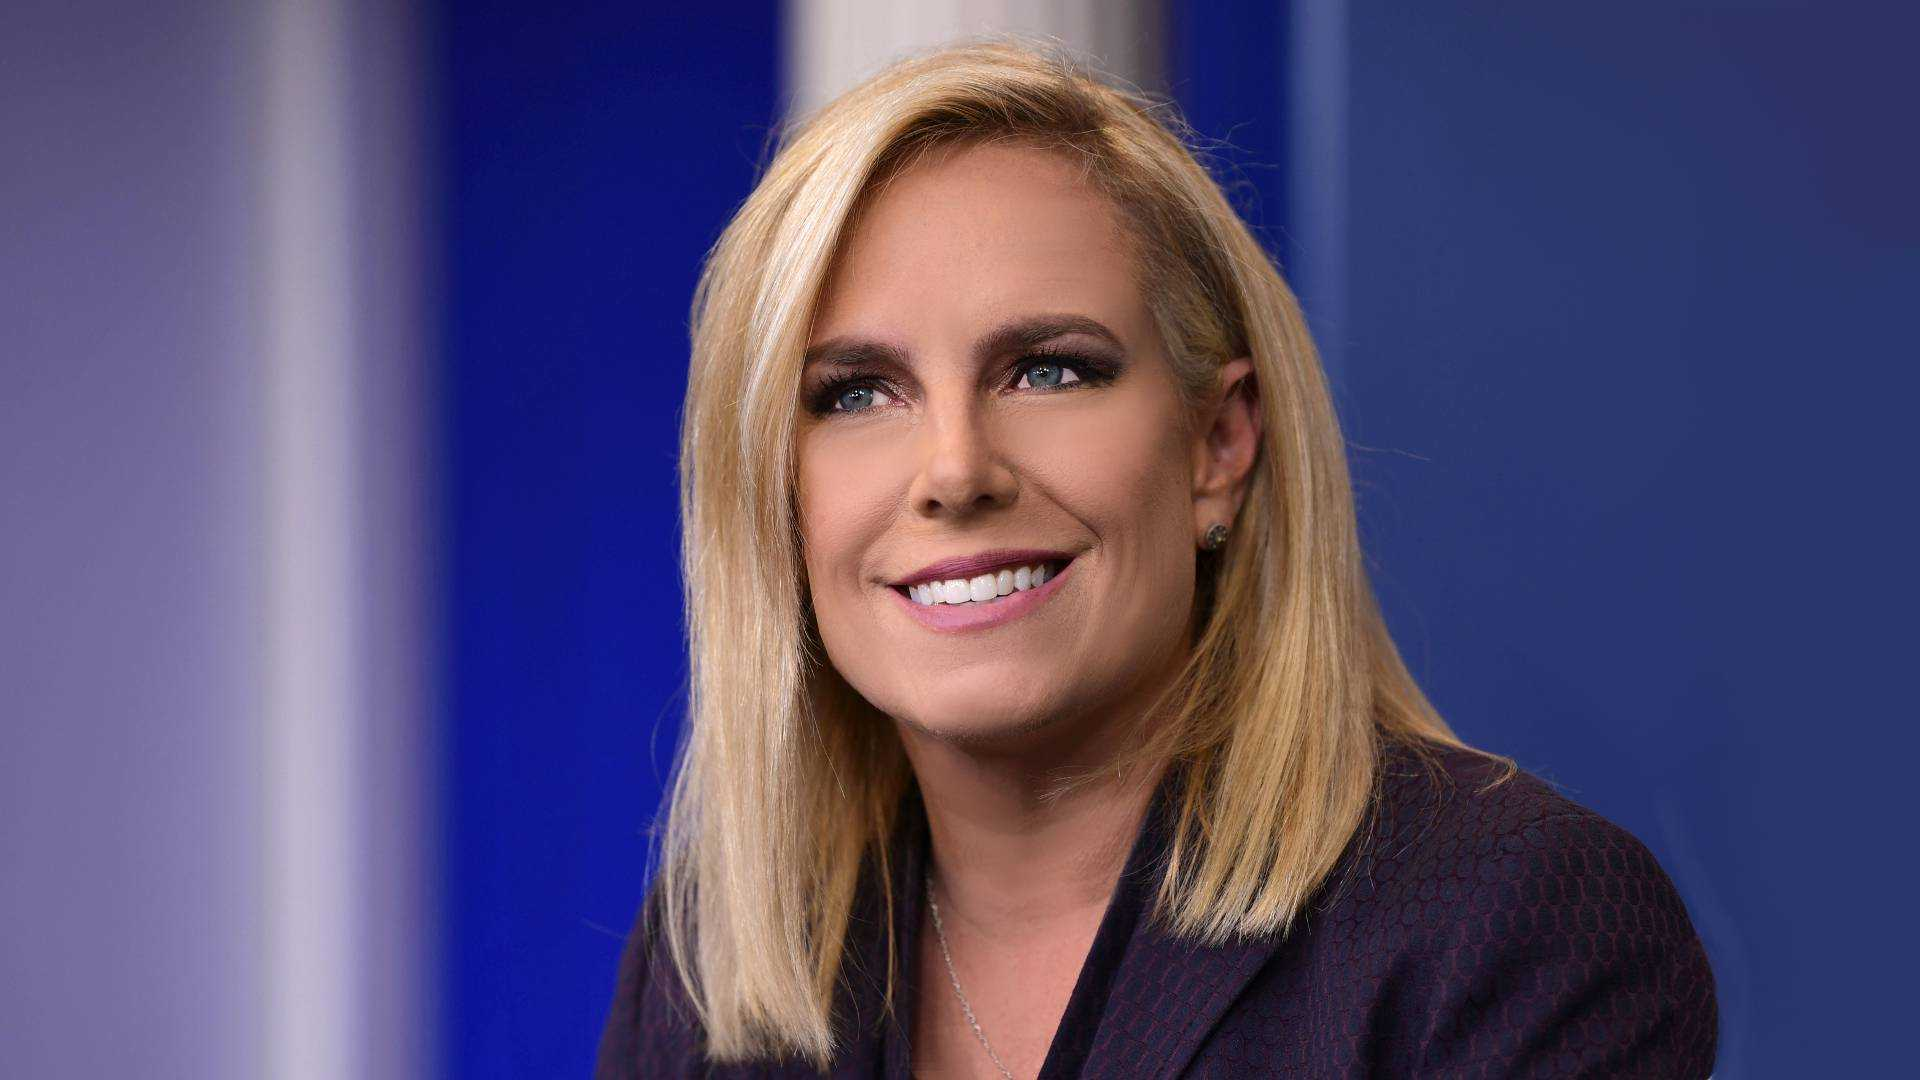 An image of Homeland Security Secretary Kirstjen Nielsen in a press briefing talks about illegal immigration during the daily briefing at the White House it's a head shot up close she has lite golden colored hair shoulder length and a great smile and large blue eyes, she is a very attractive woman